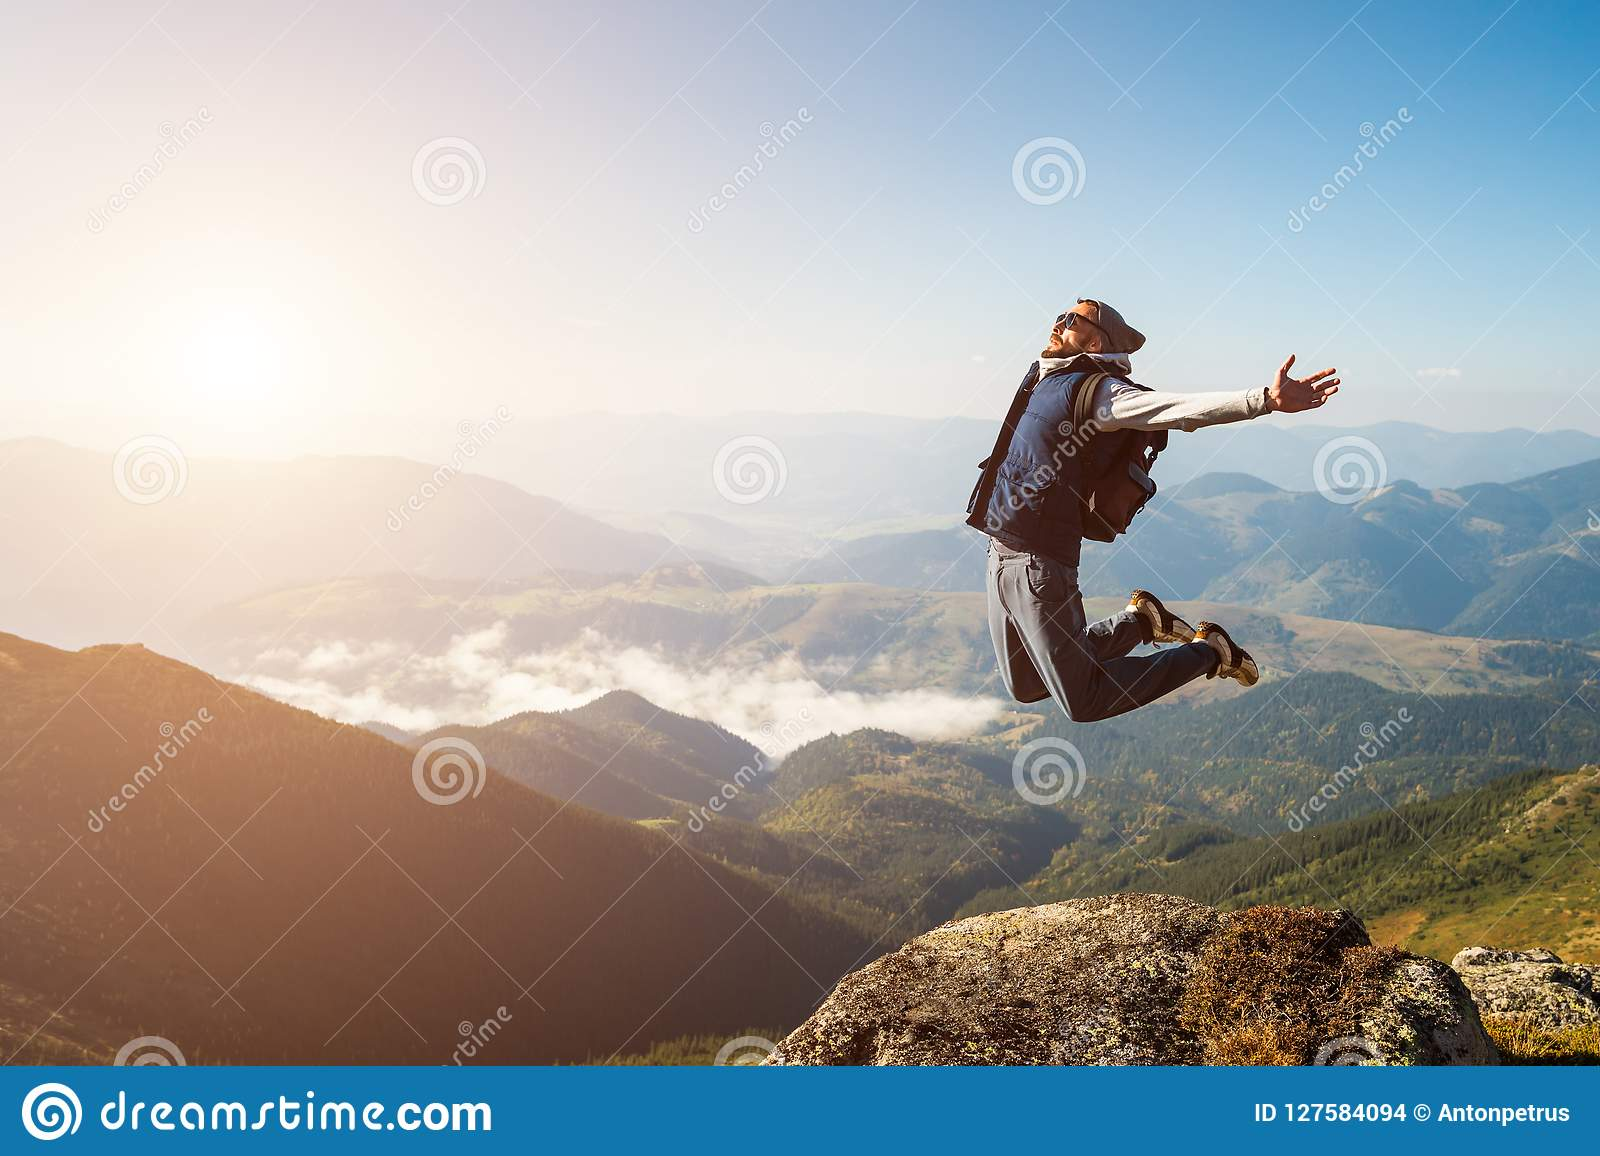 Young man jumping on top of a mountain against the sky